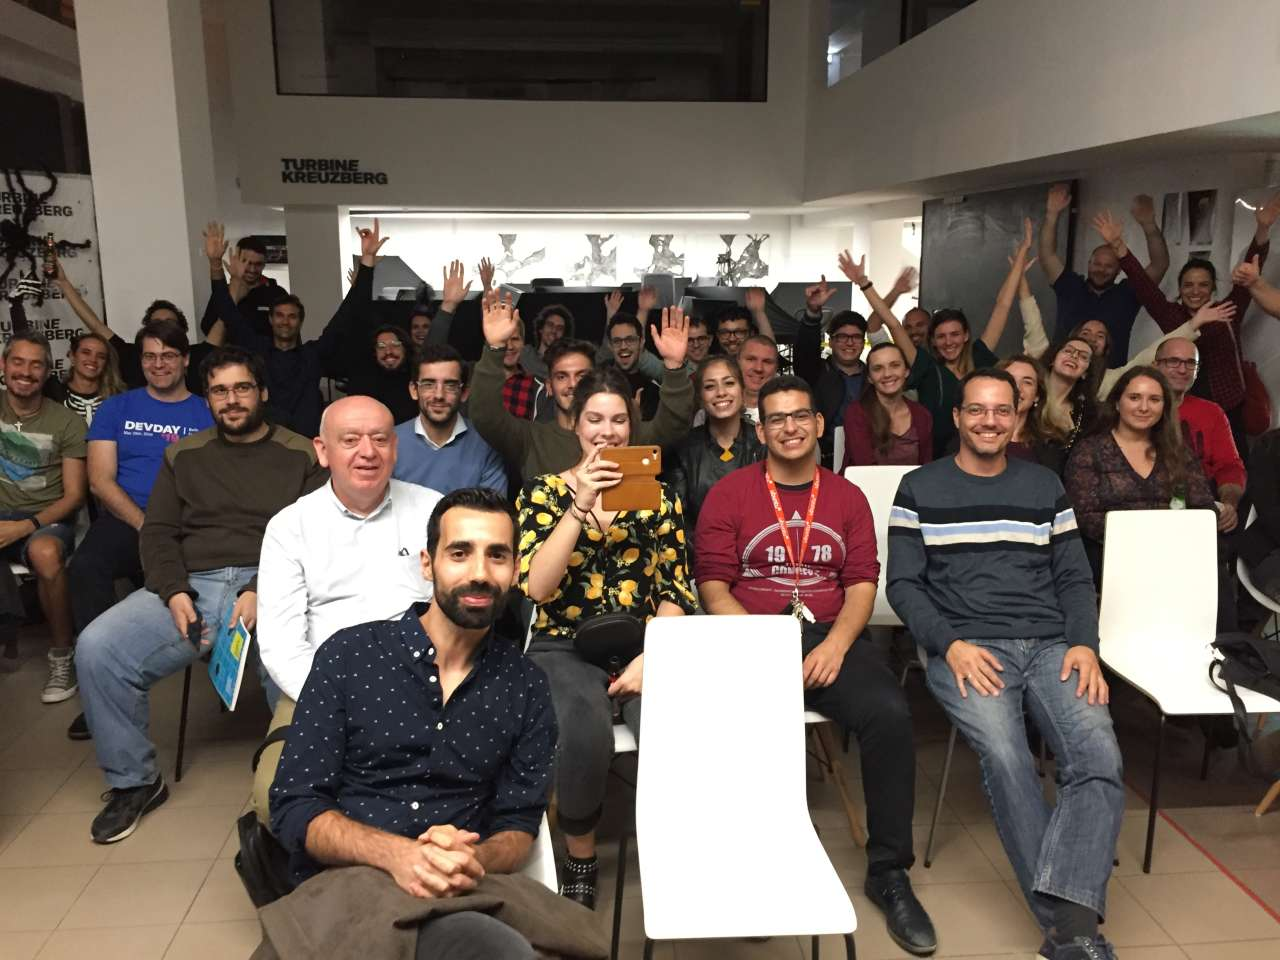 coding stuttgart crowd in october 2019 waving at you